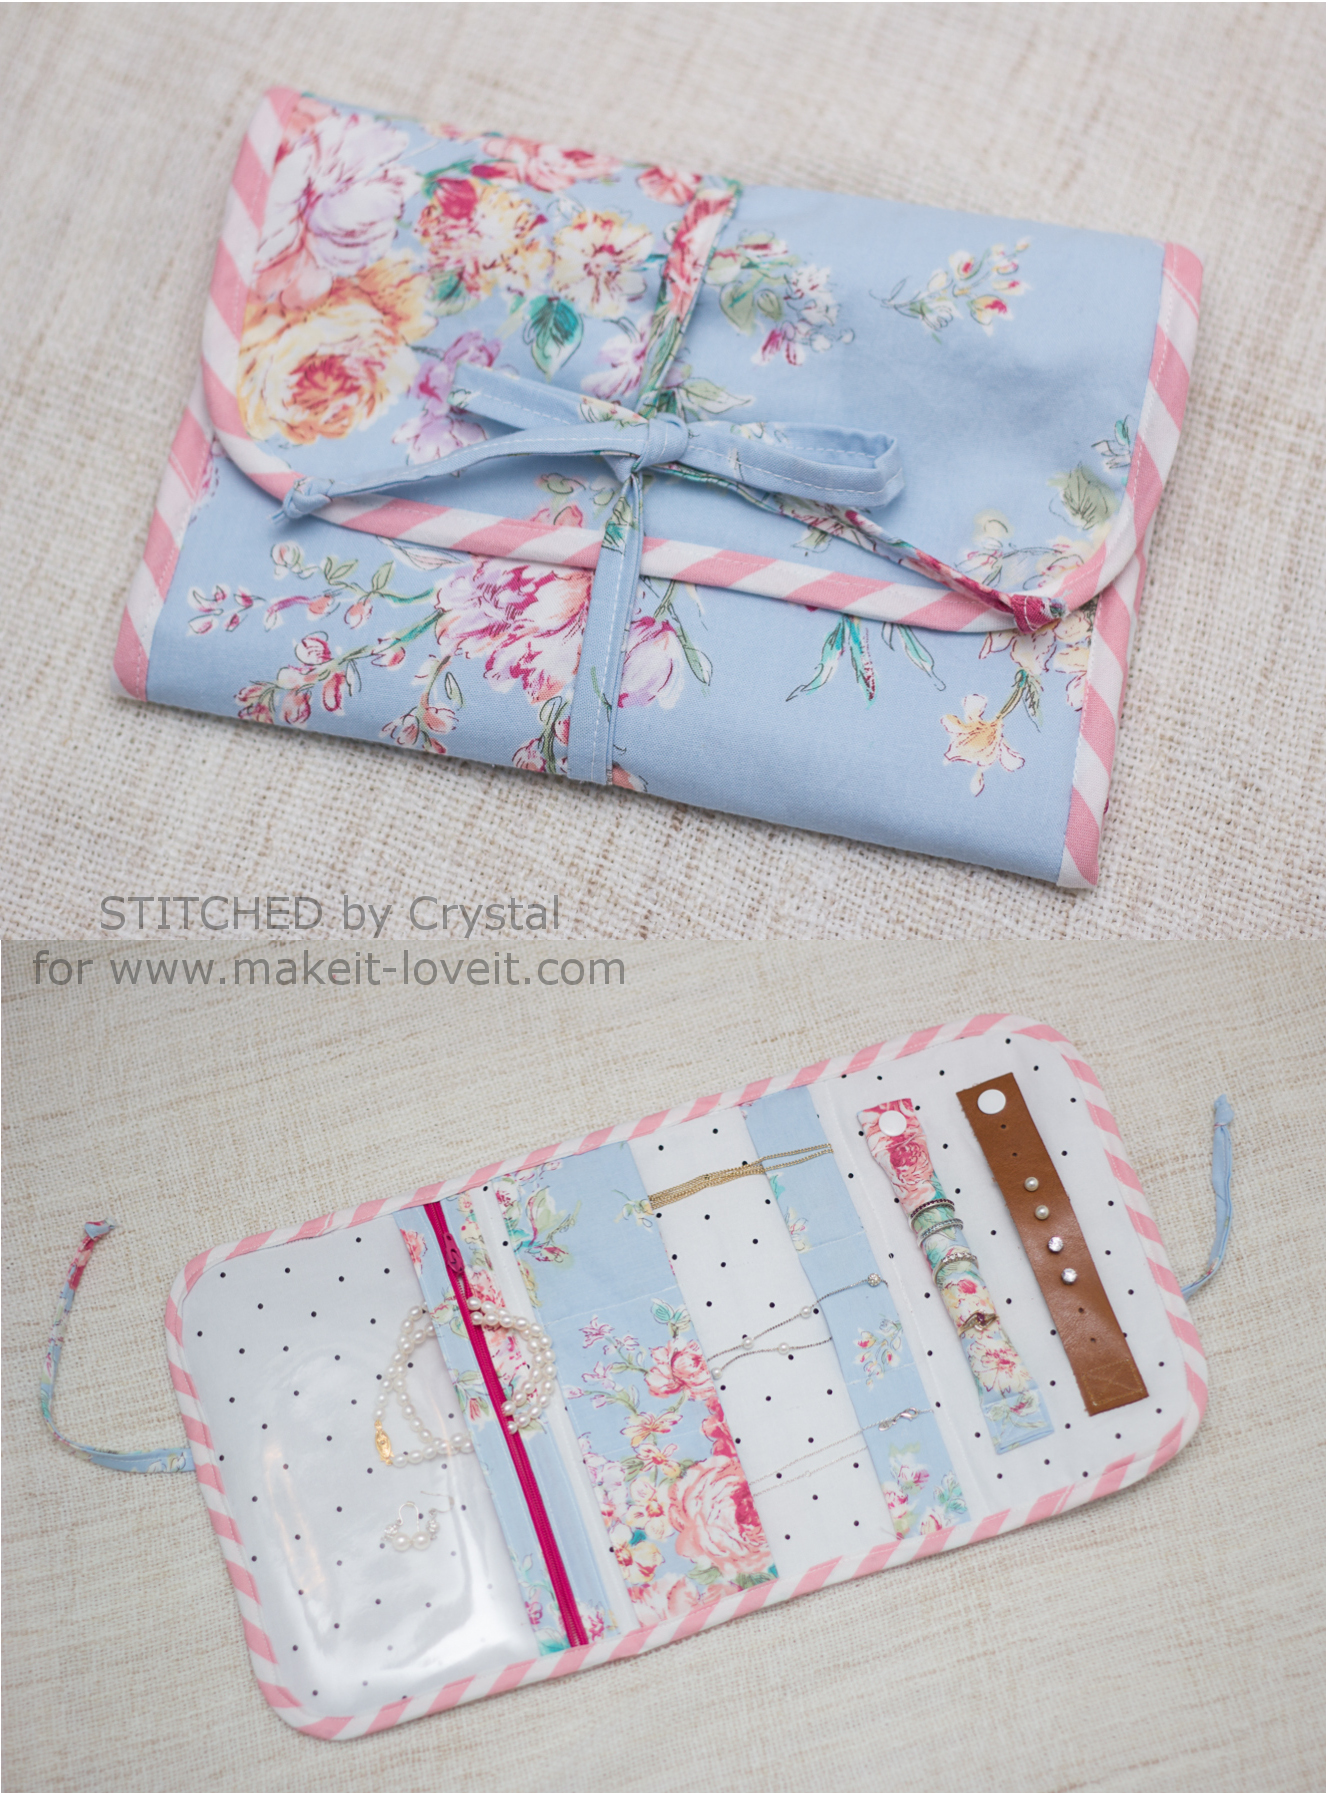 Travel Jewelry Clutch Tutorial....no more tangled or lost jewelry!   via www.makeit-loveit.com